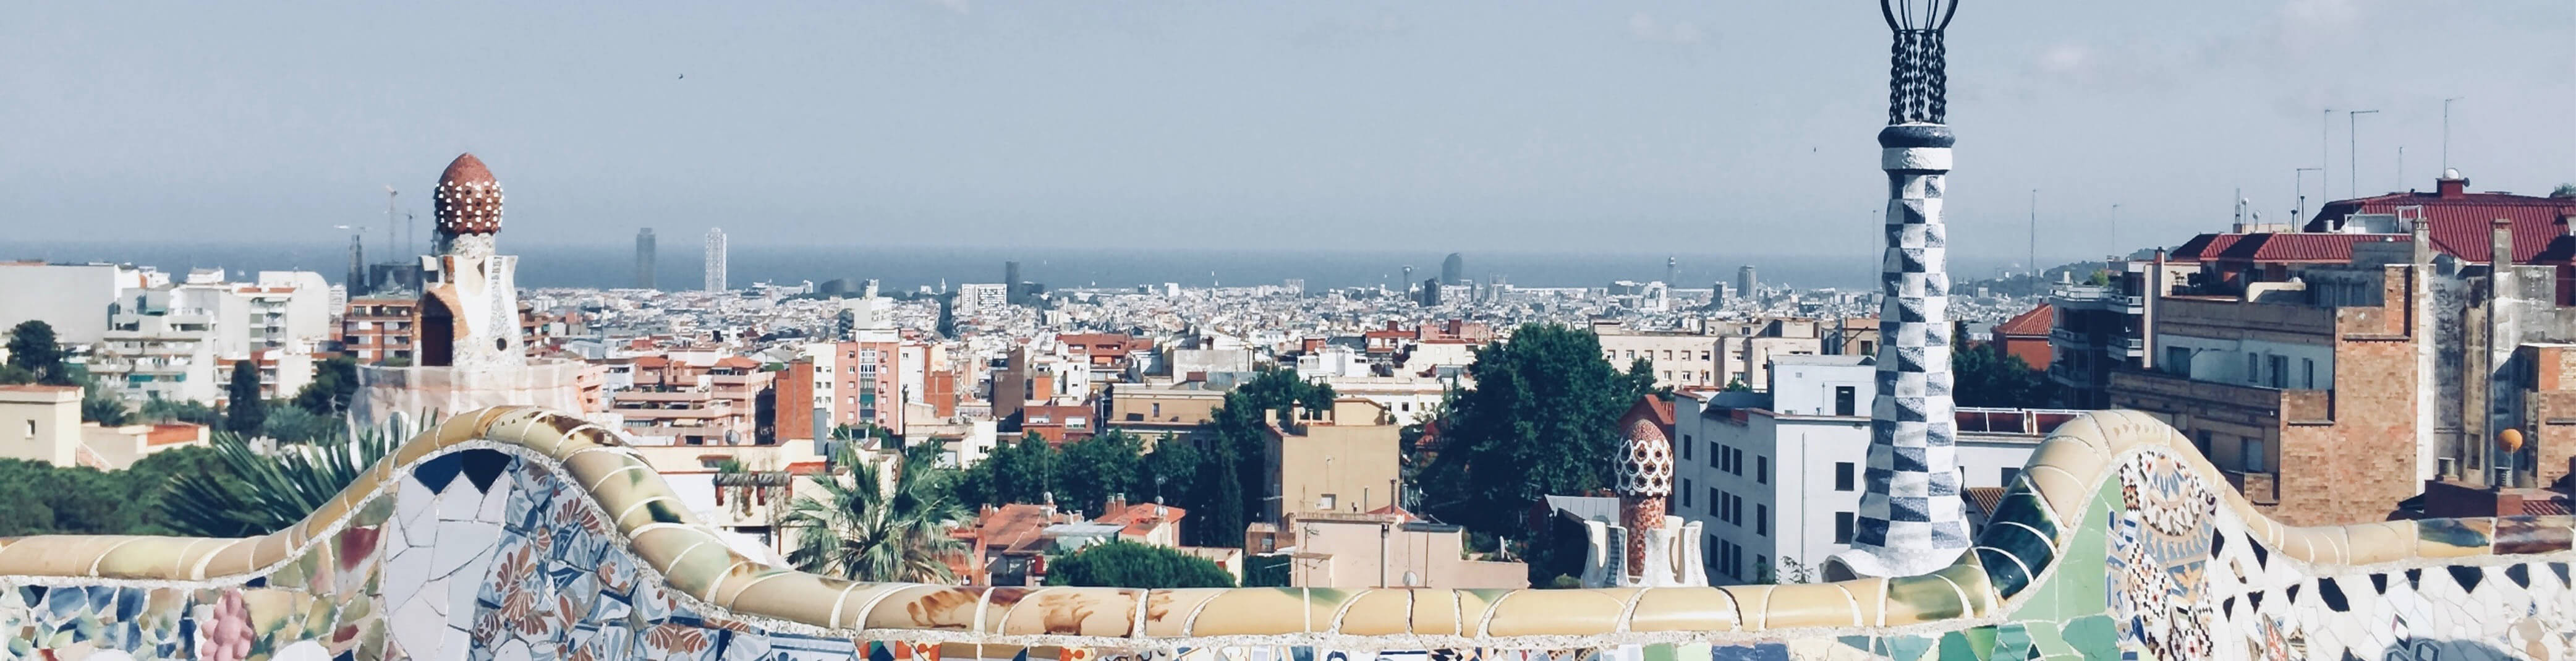 Online Training Courses In Barcelona